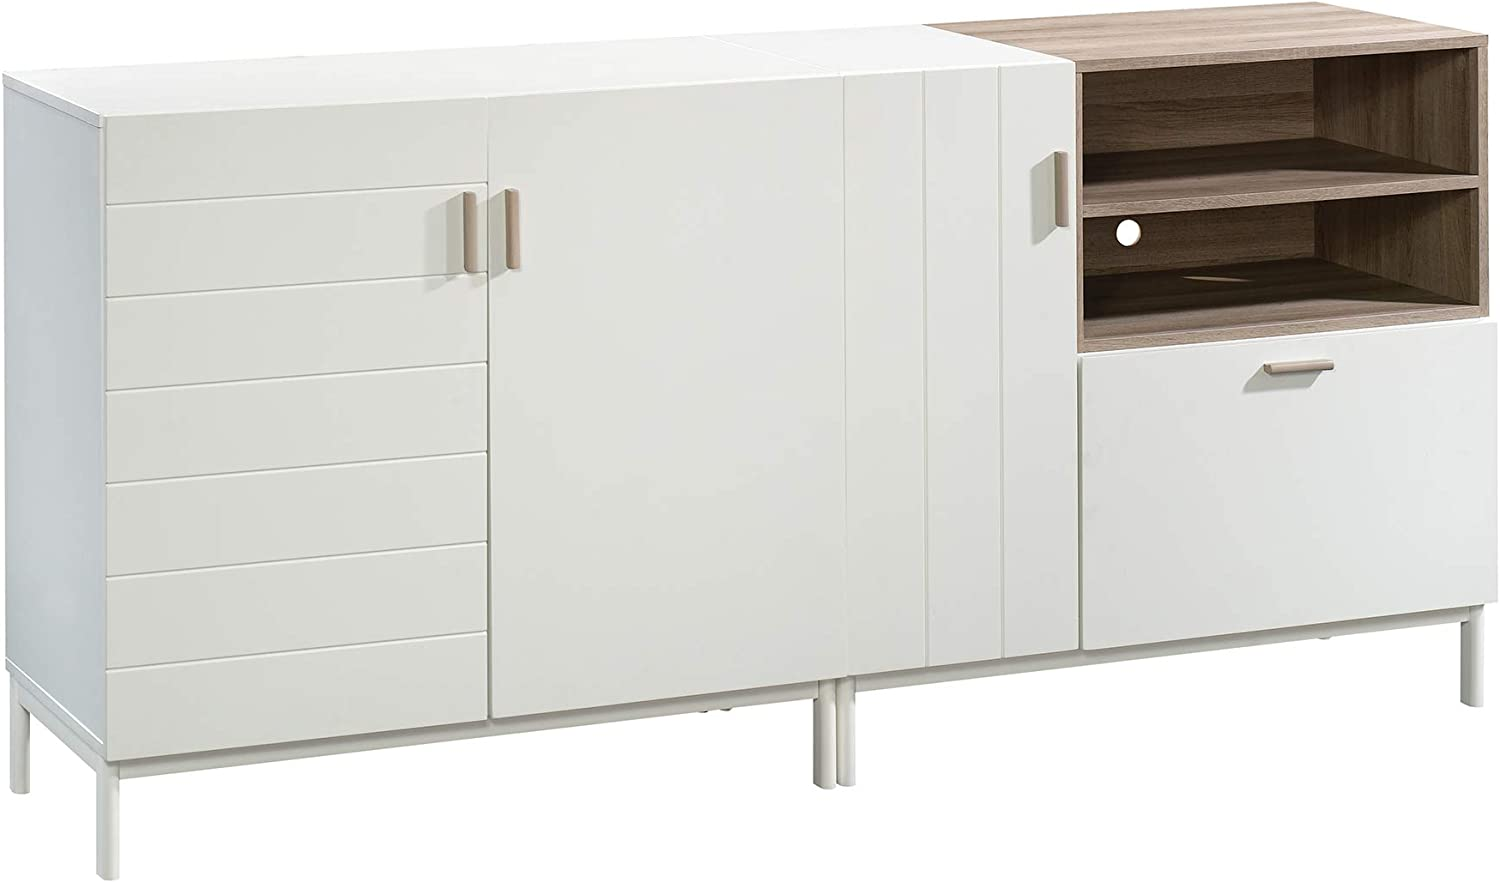 Sauder Free shipping anywhere in the nation Anda Norr Credenza for TVs New Shipping Free Shipping Finish up White 60